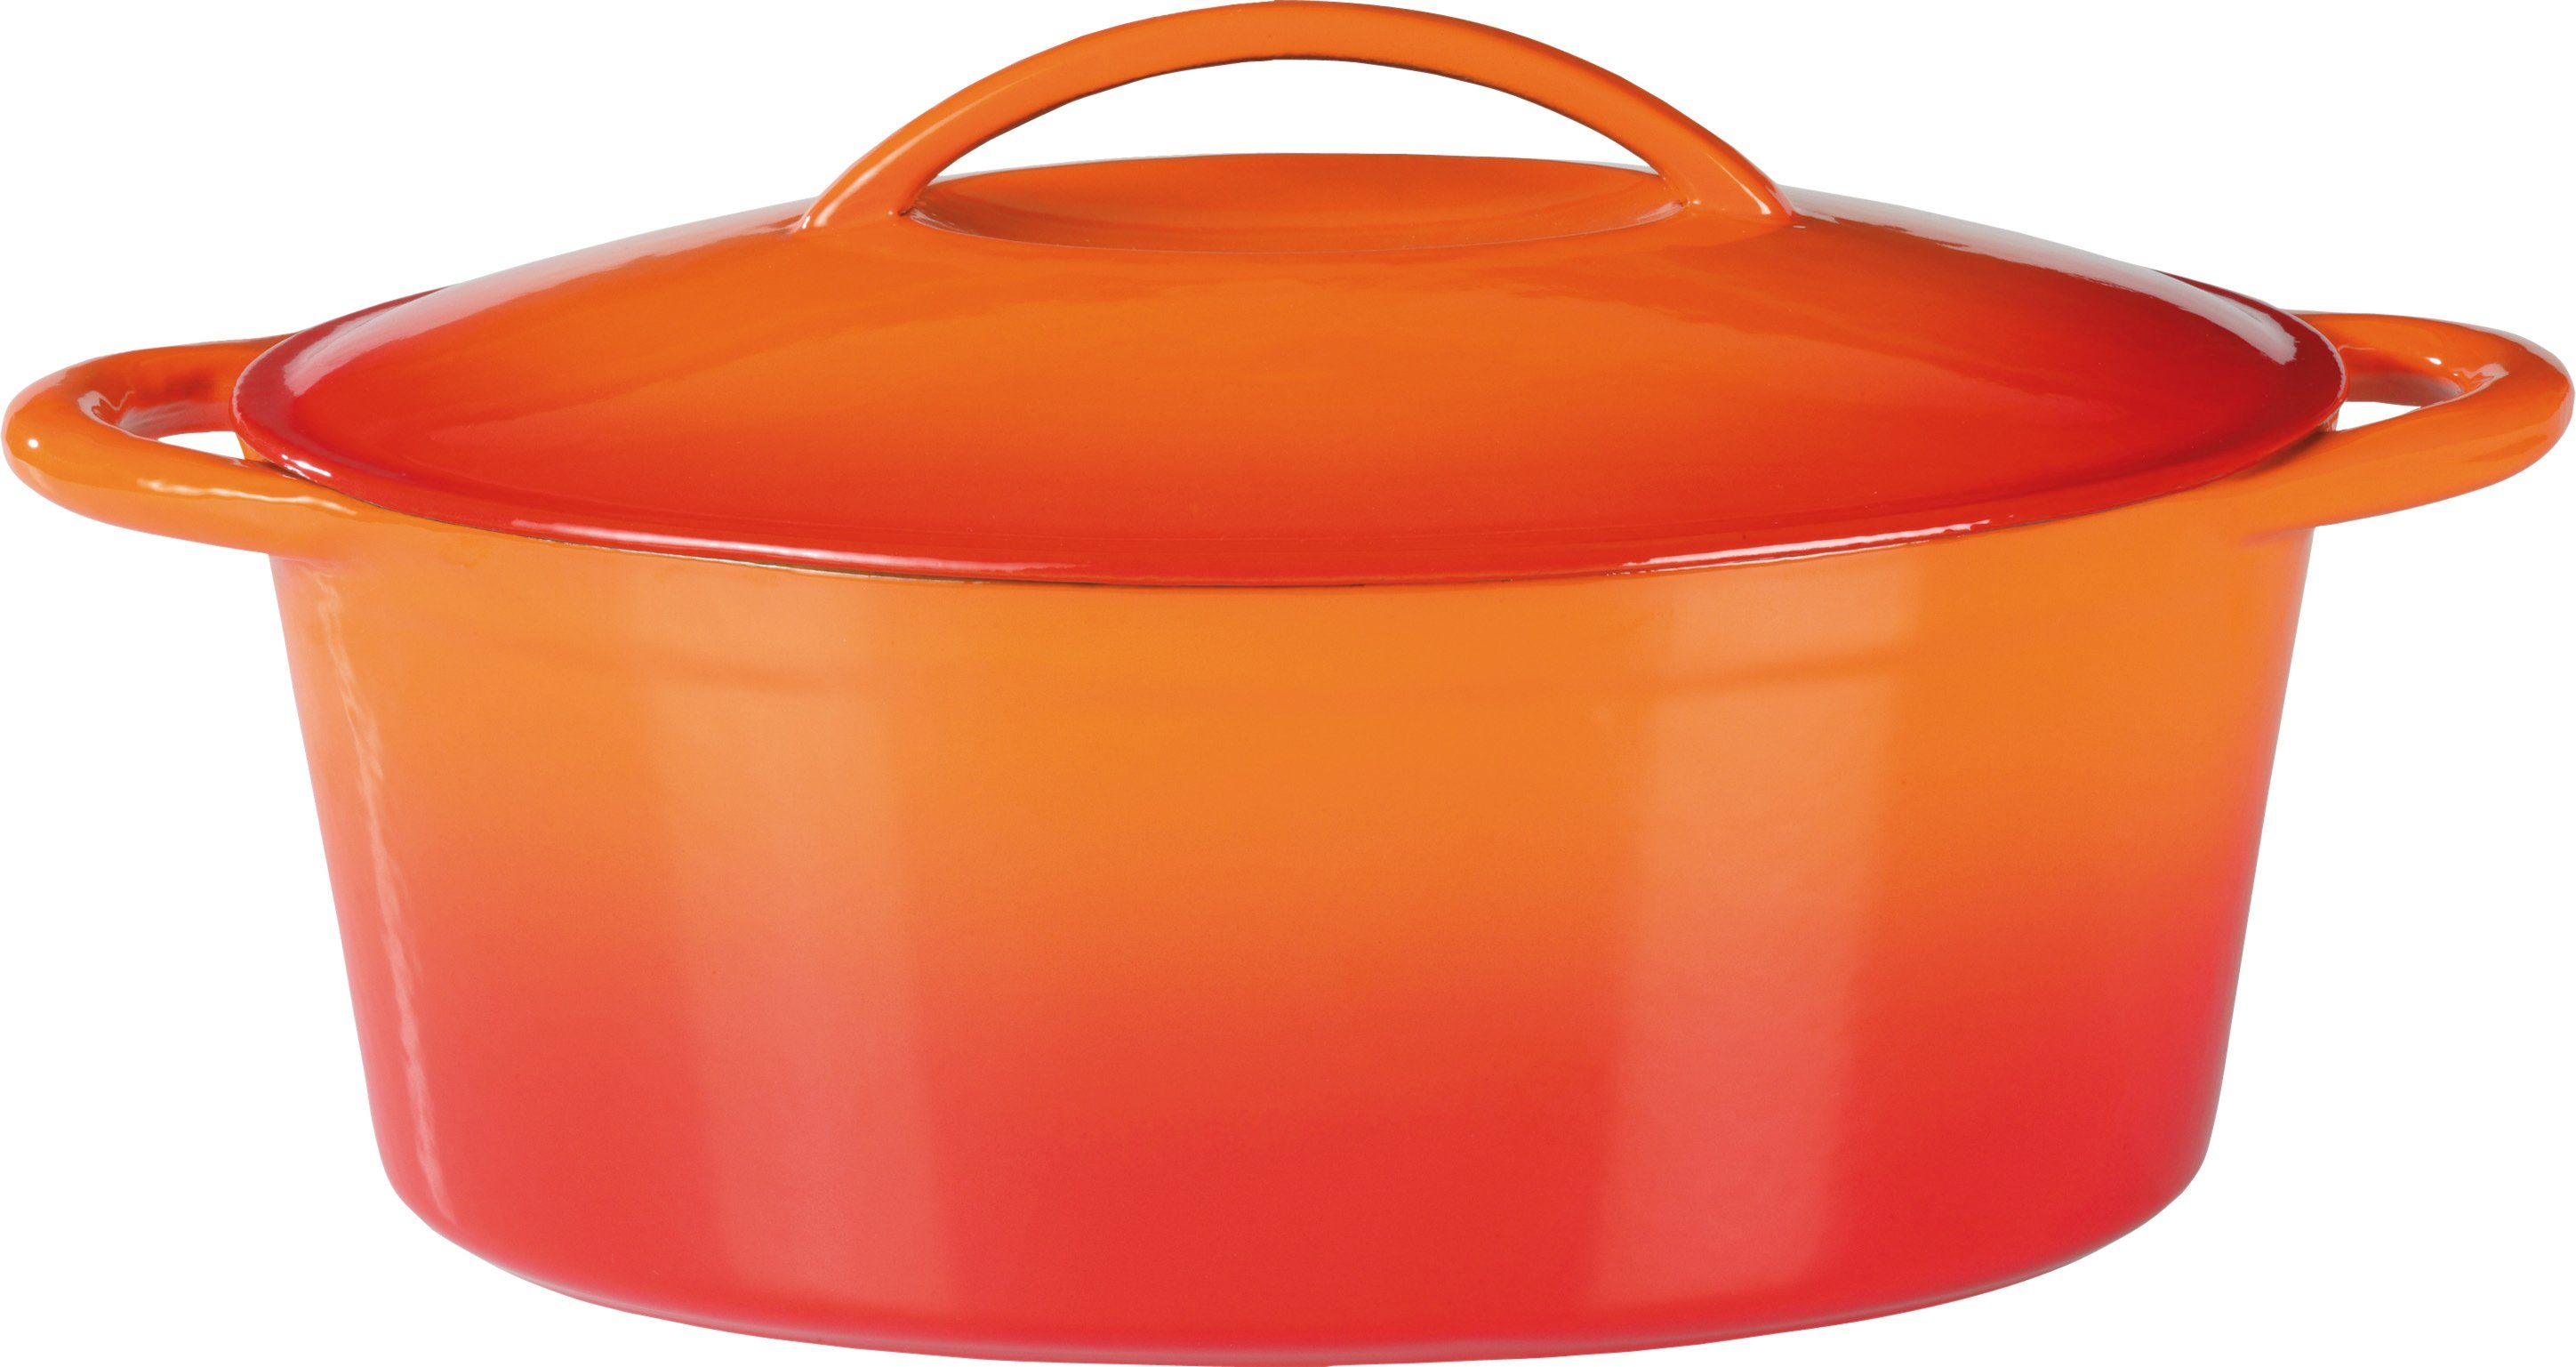 Gsw Bräter Gusseisen Induktion Orange Shadow 7 Liter